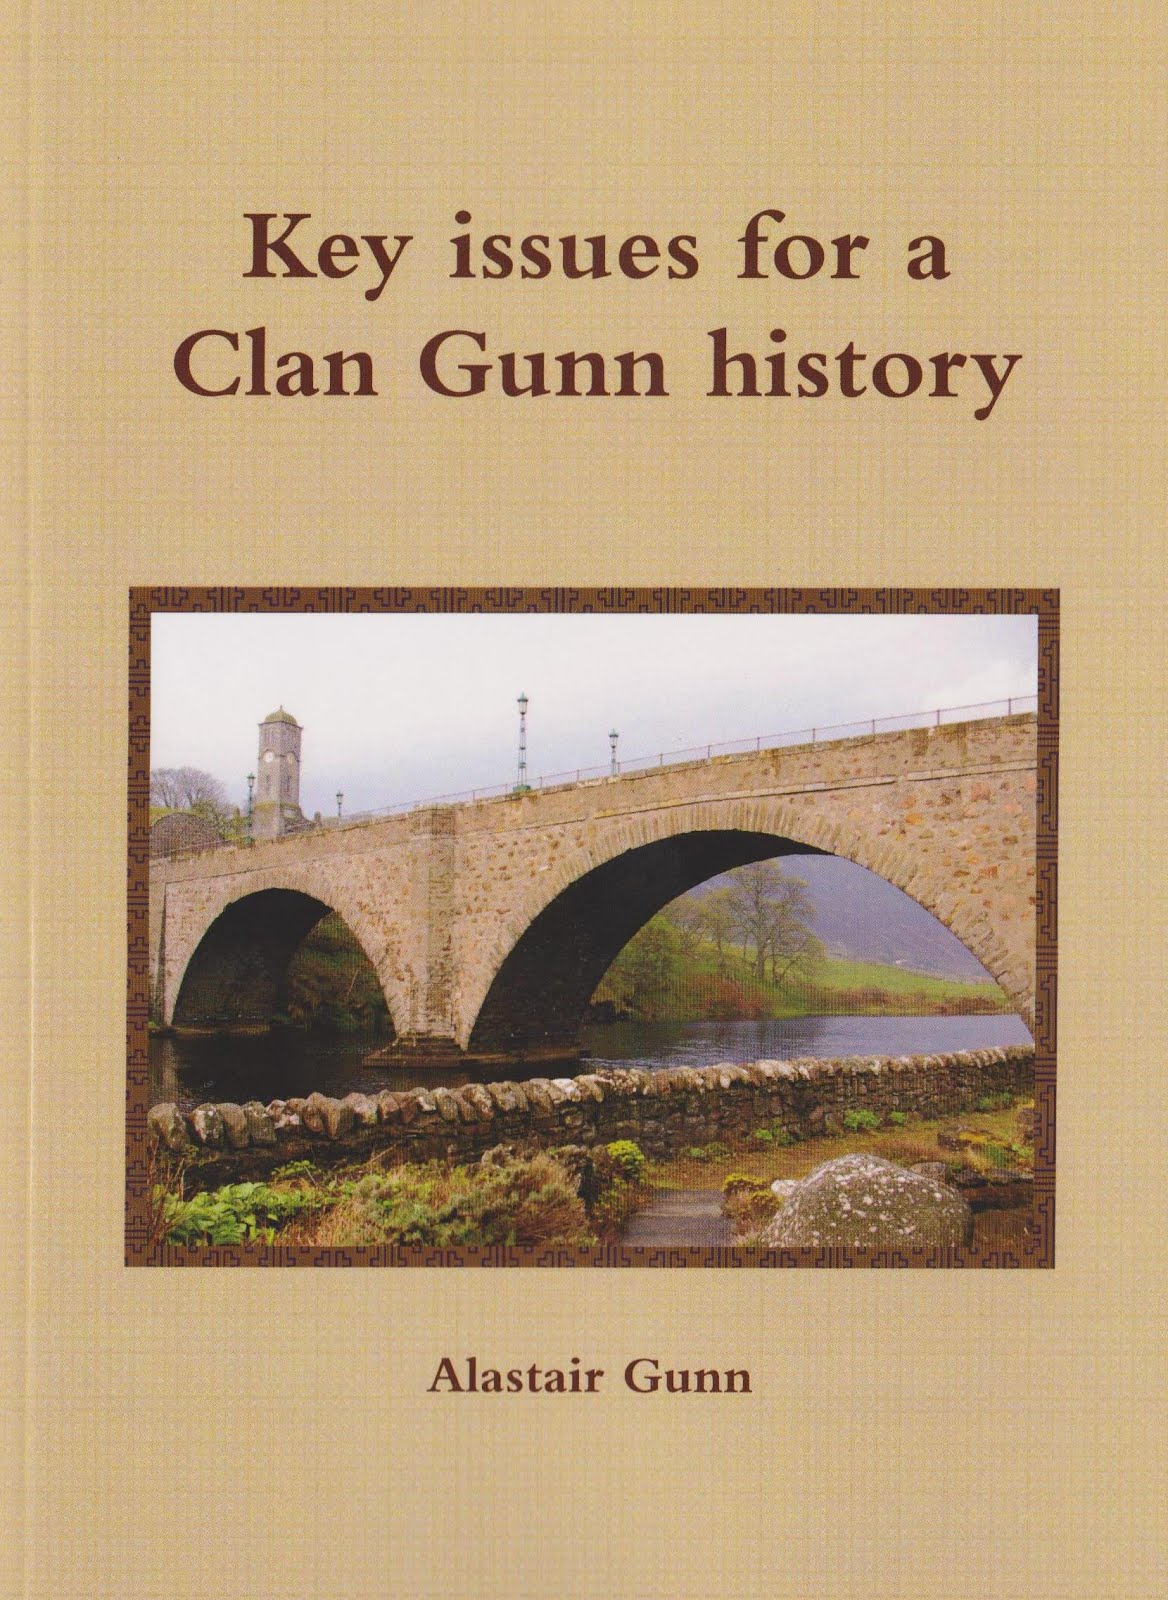 Key issues for a Clan Gunn history